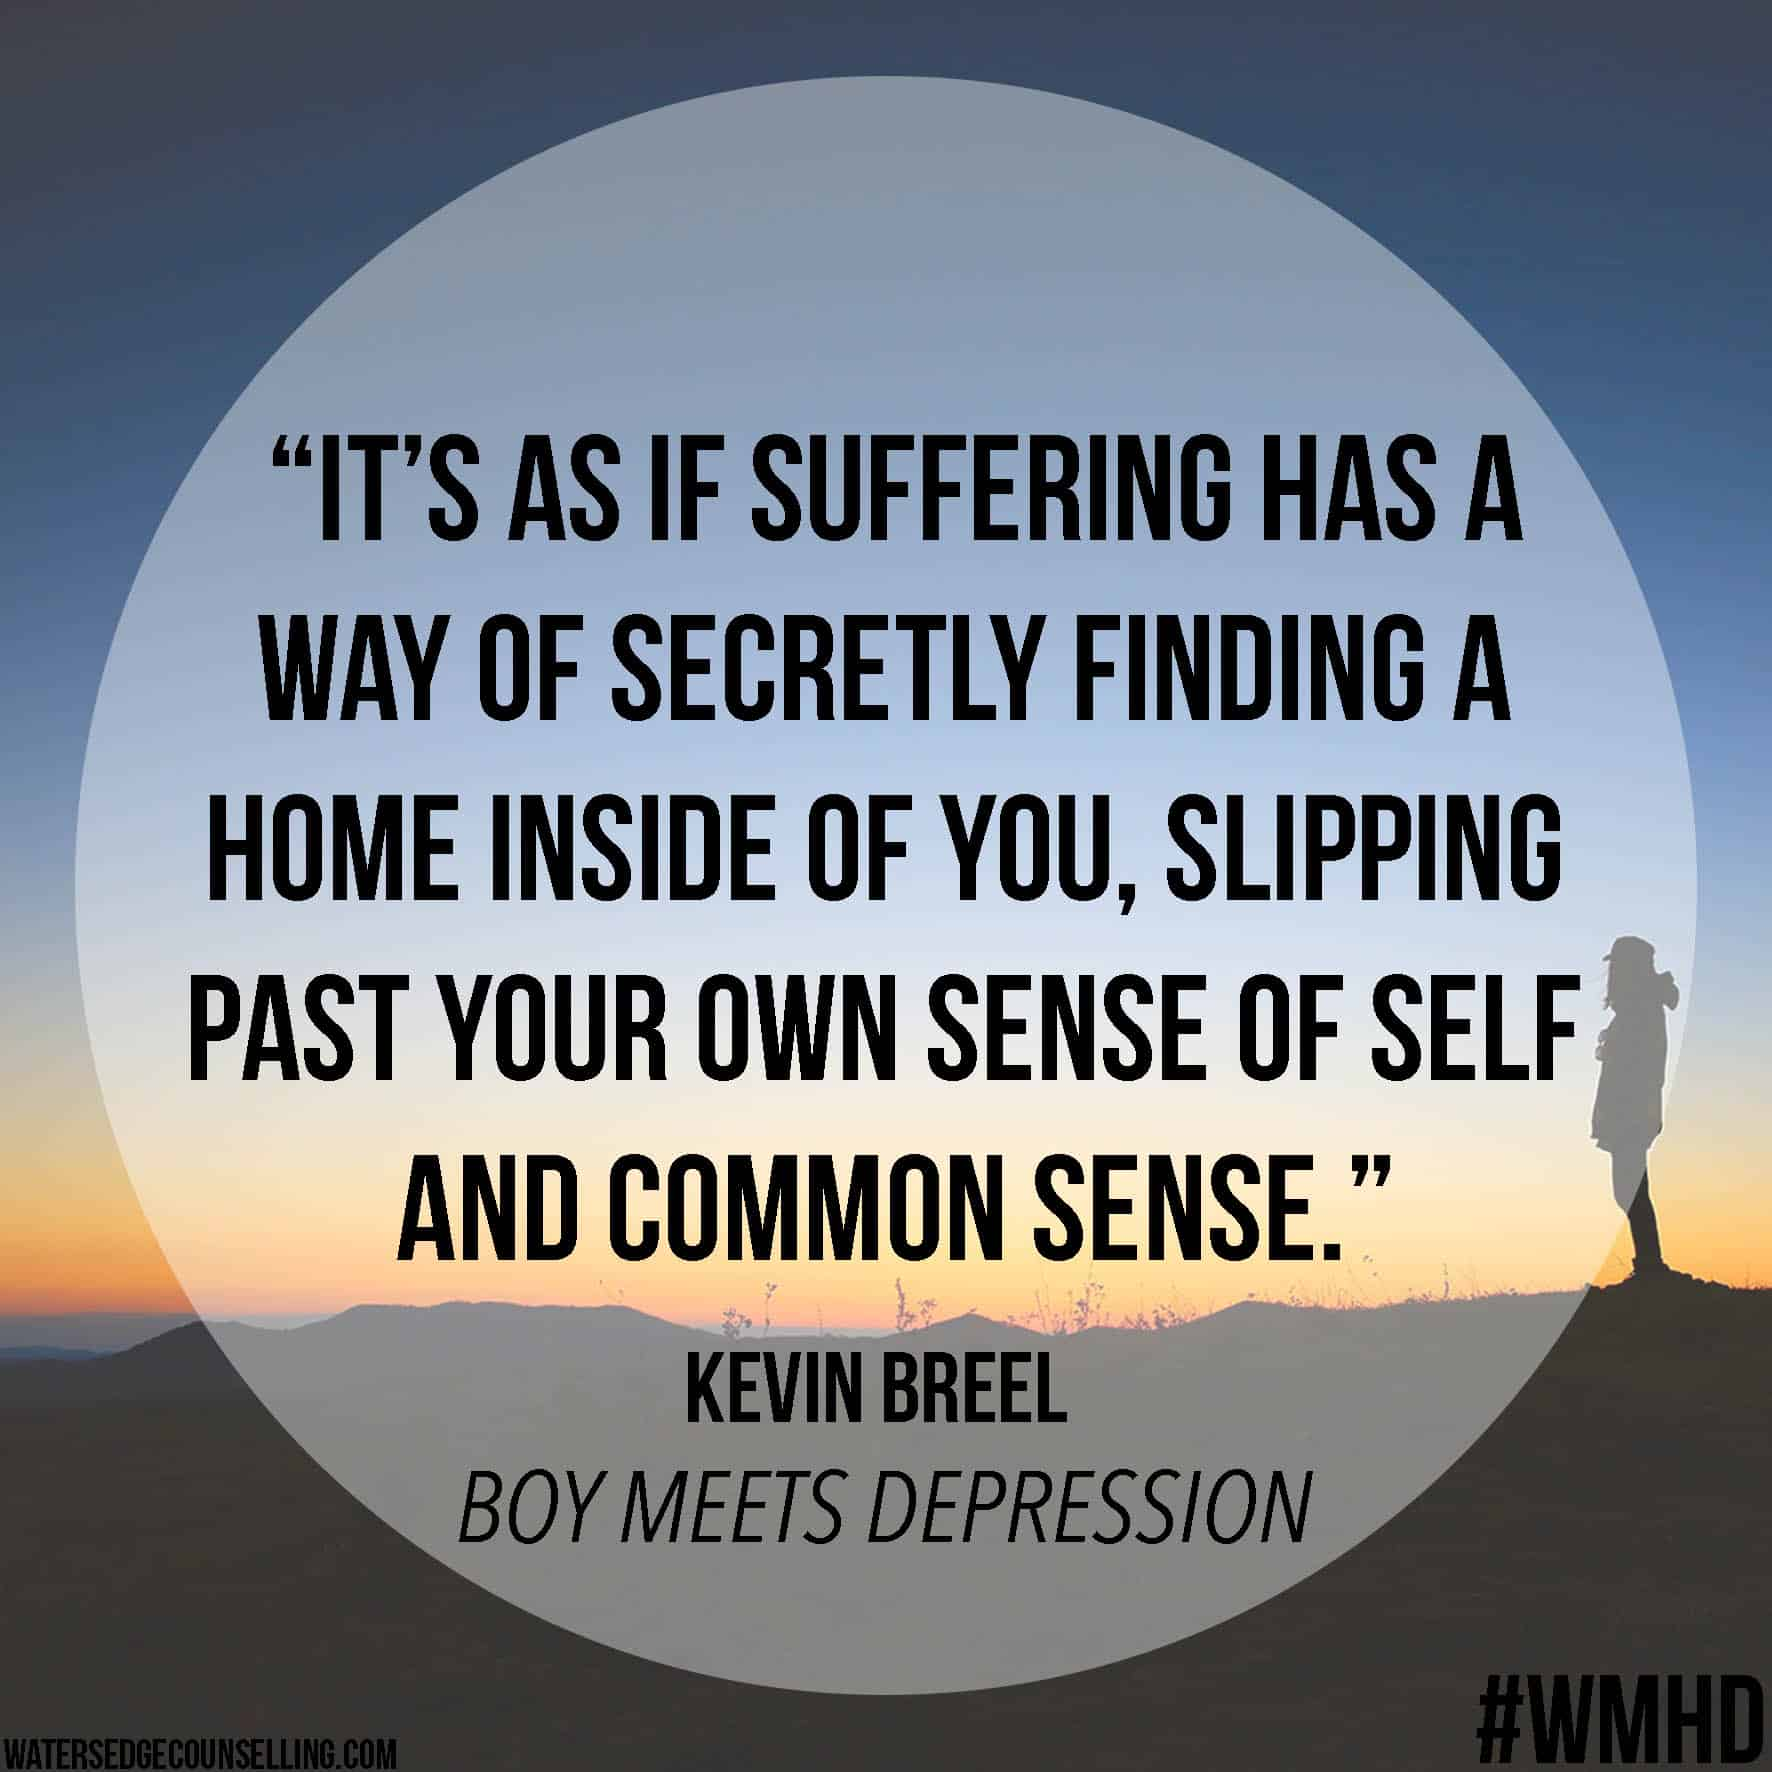 Boy Meets Depression - Watersedge Counselling